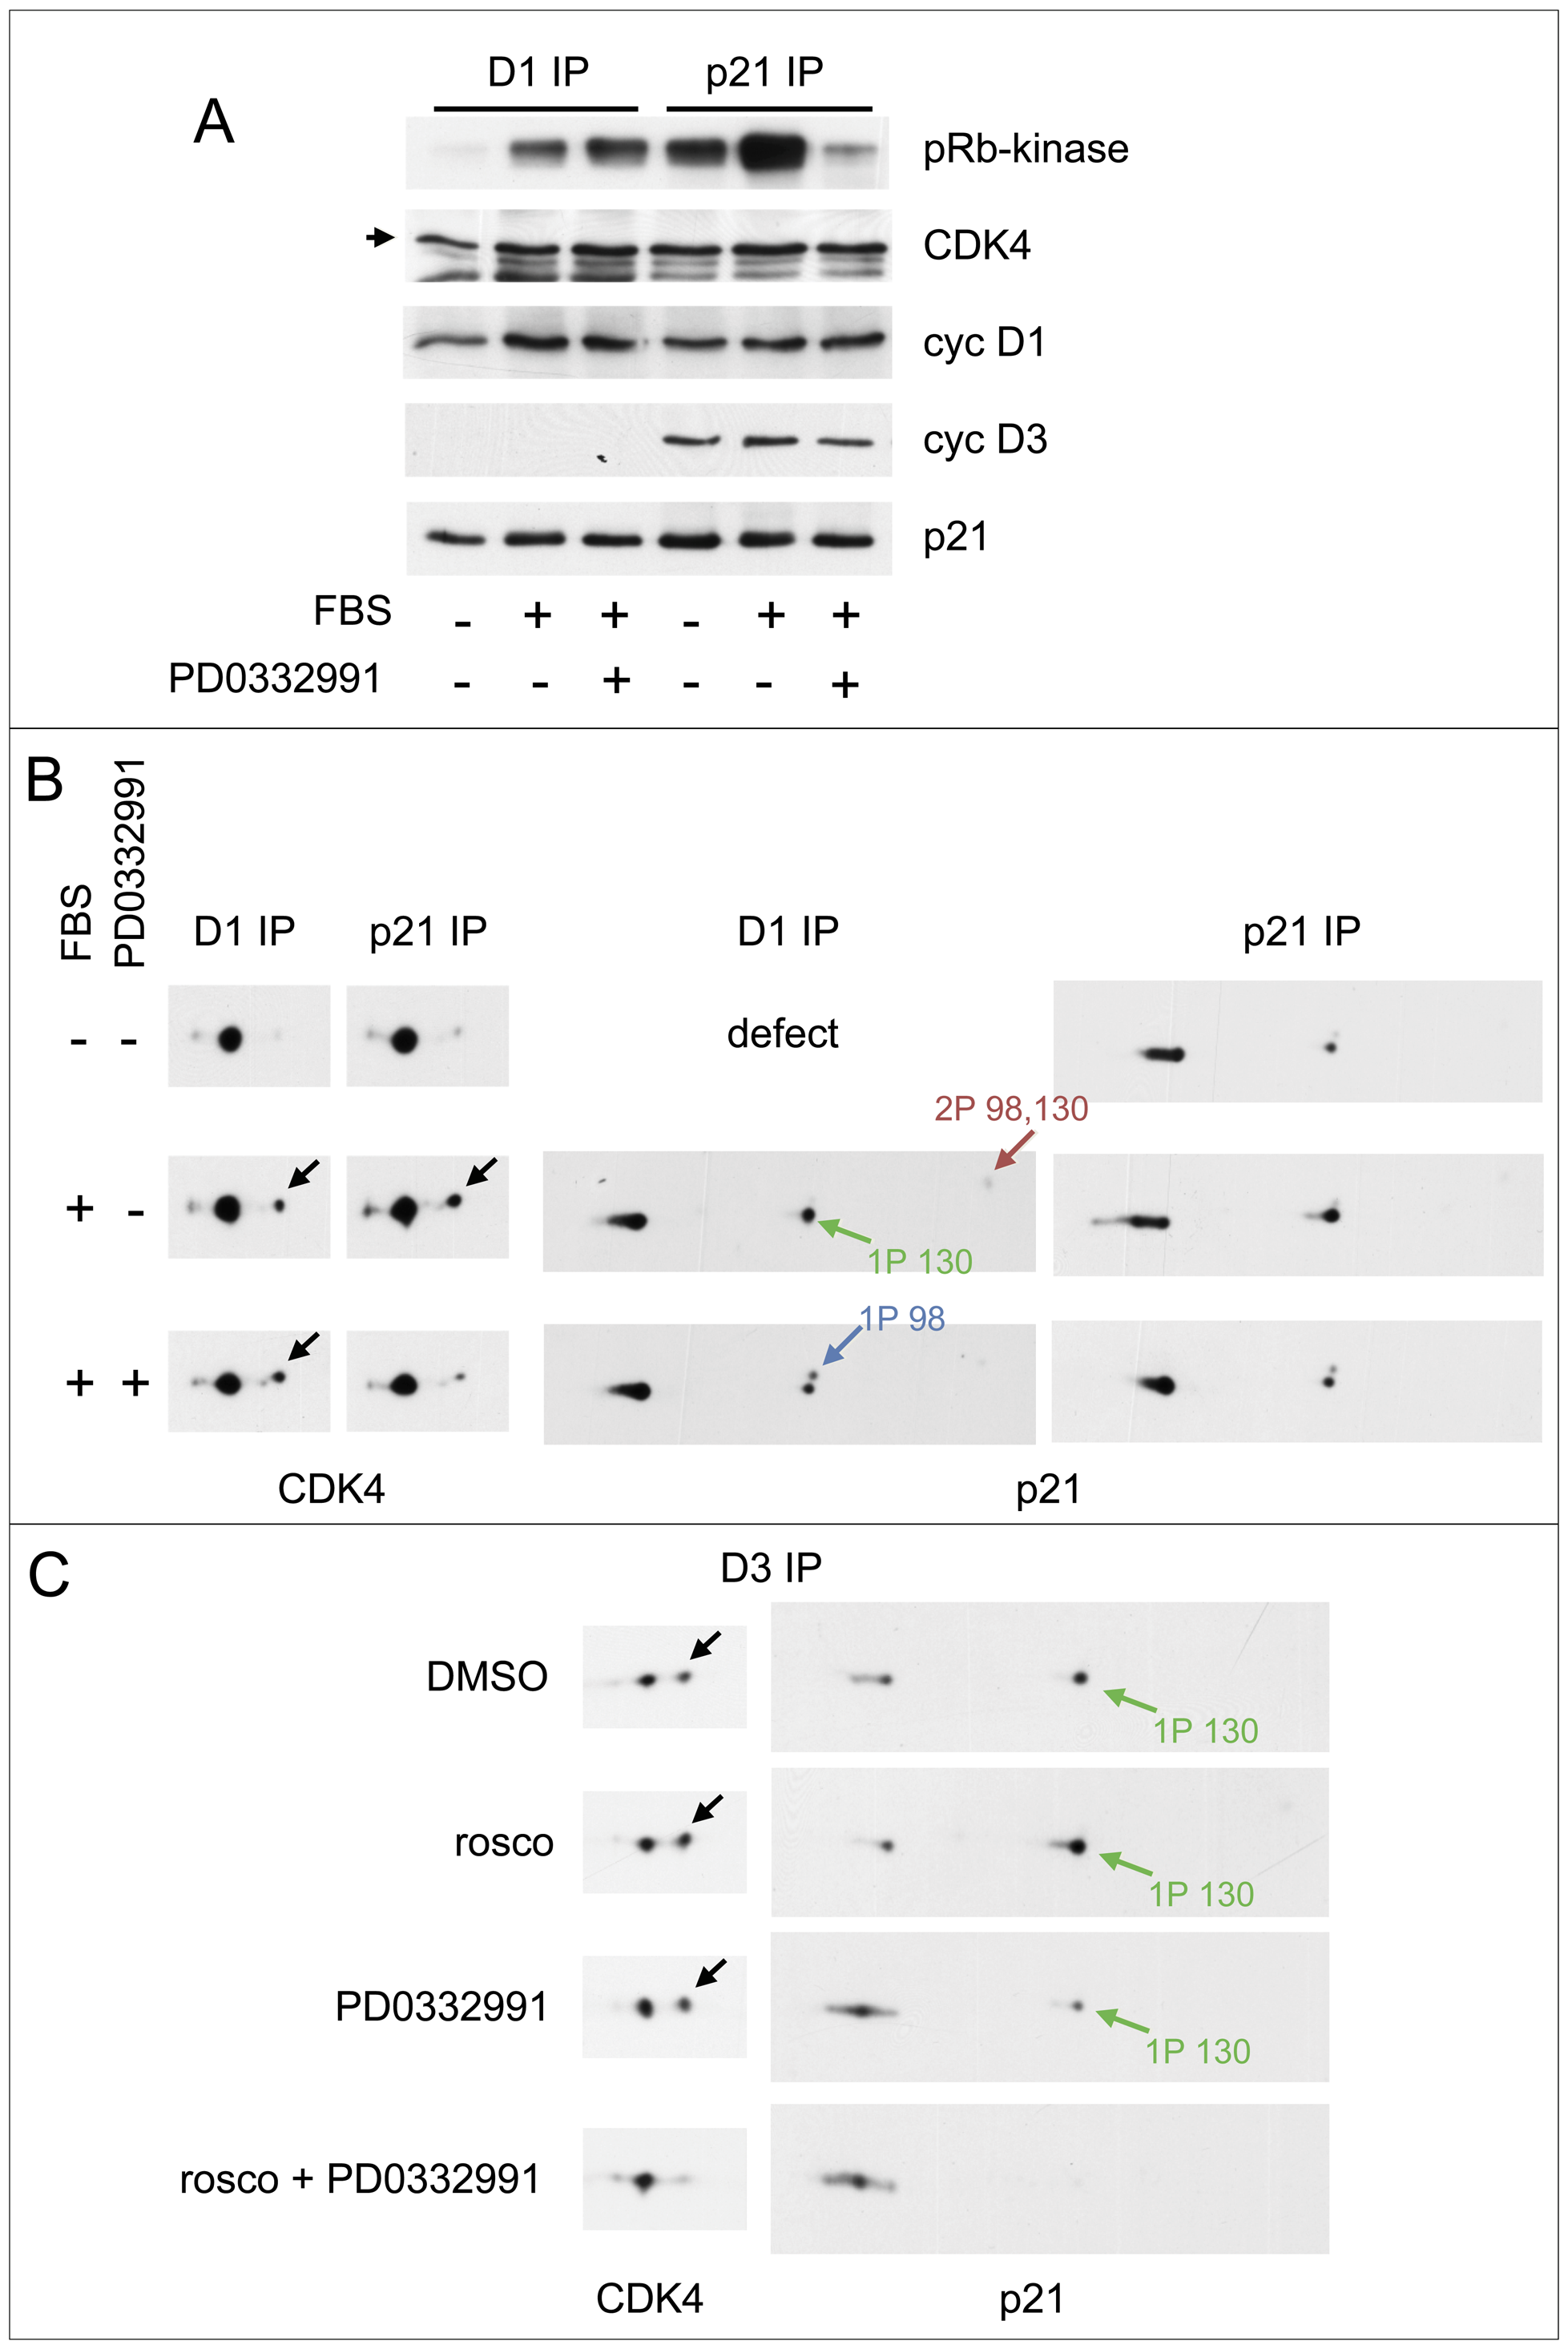 Activities of both CDK4/6 and CDK2 are required for S130 phosphorylation of p21 and activation of p21-bound CDK4.